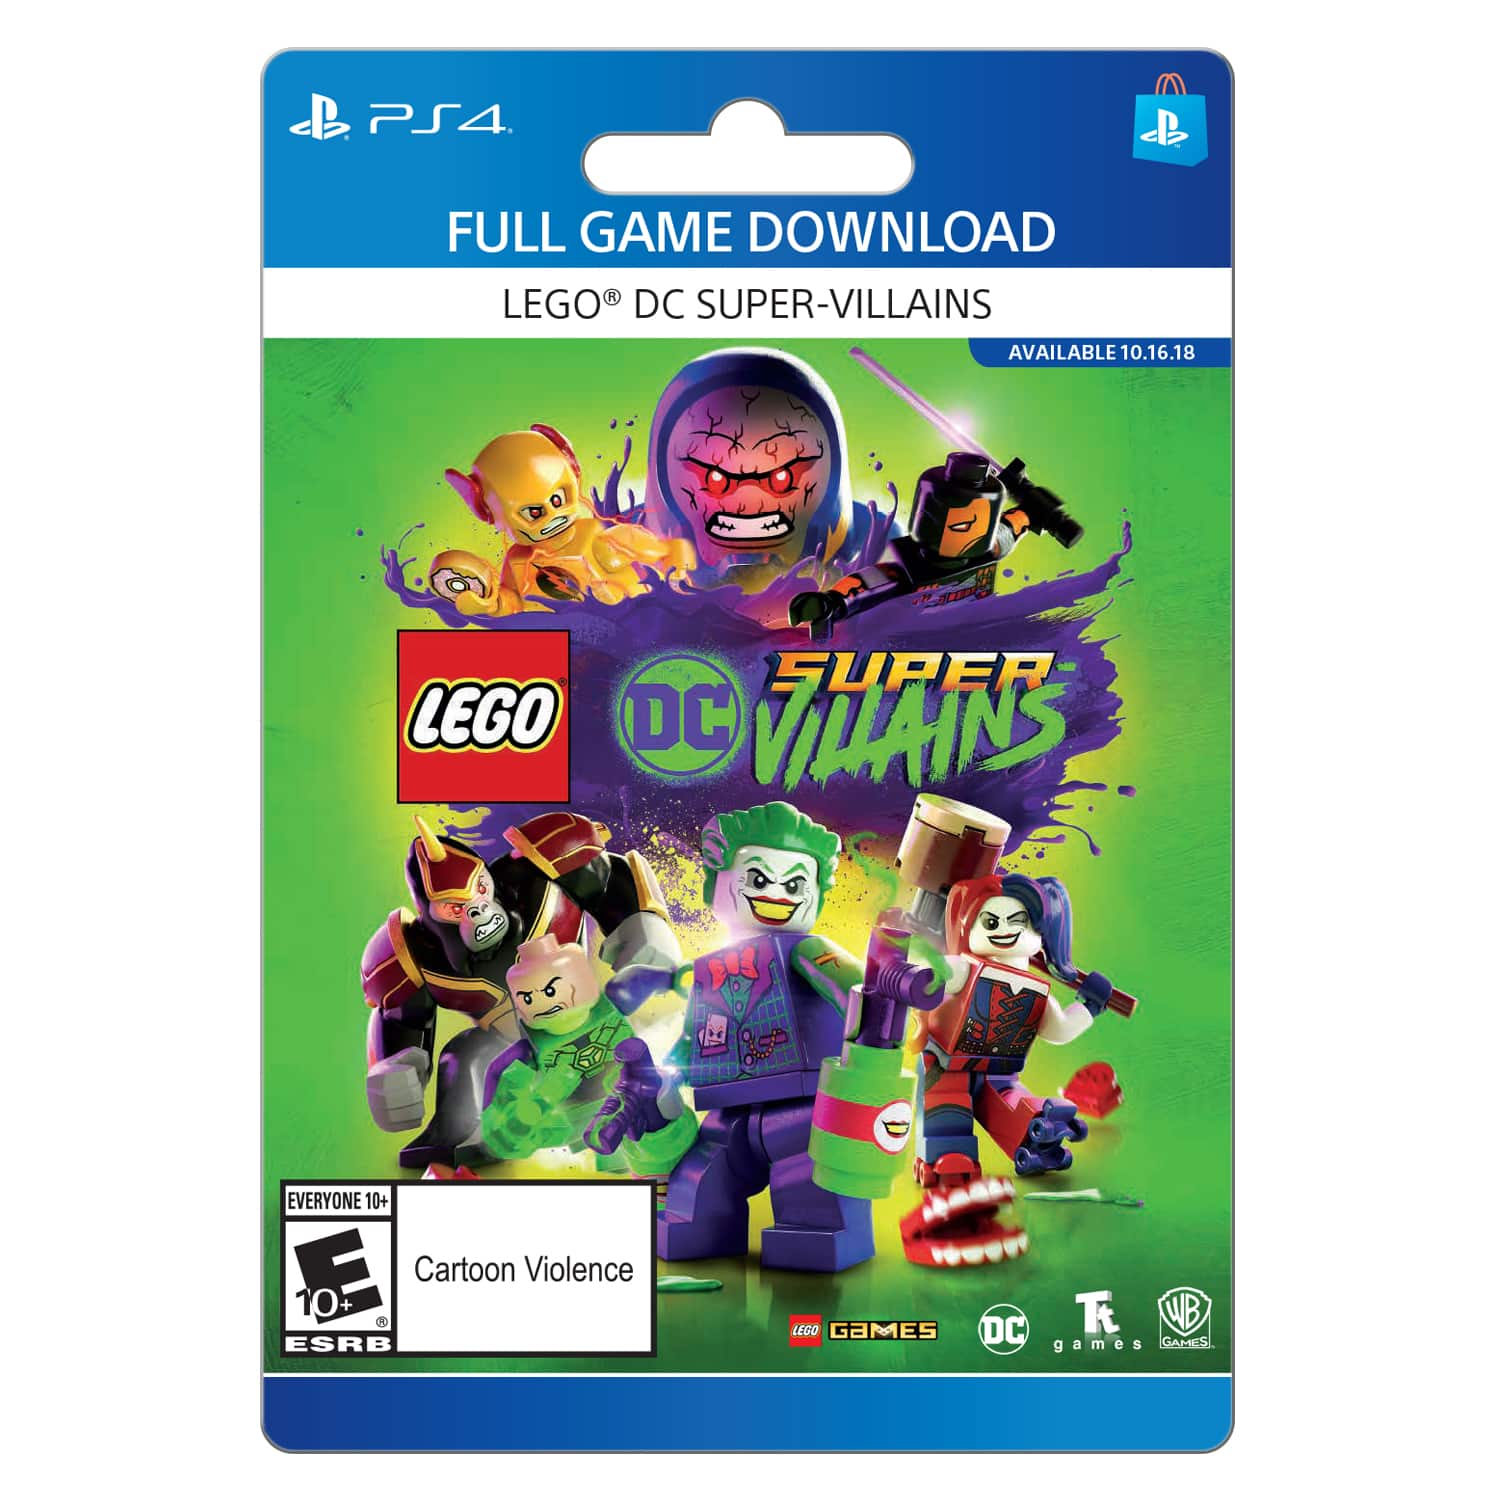 Lego DC Super Villains - PS4 - DIGITAL DOWNLOAD CARD/CODE - $5.34 at Wal-Mart - IN STORE ONLY